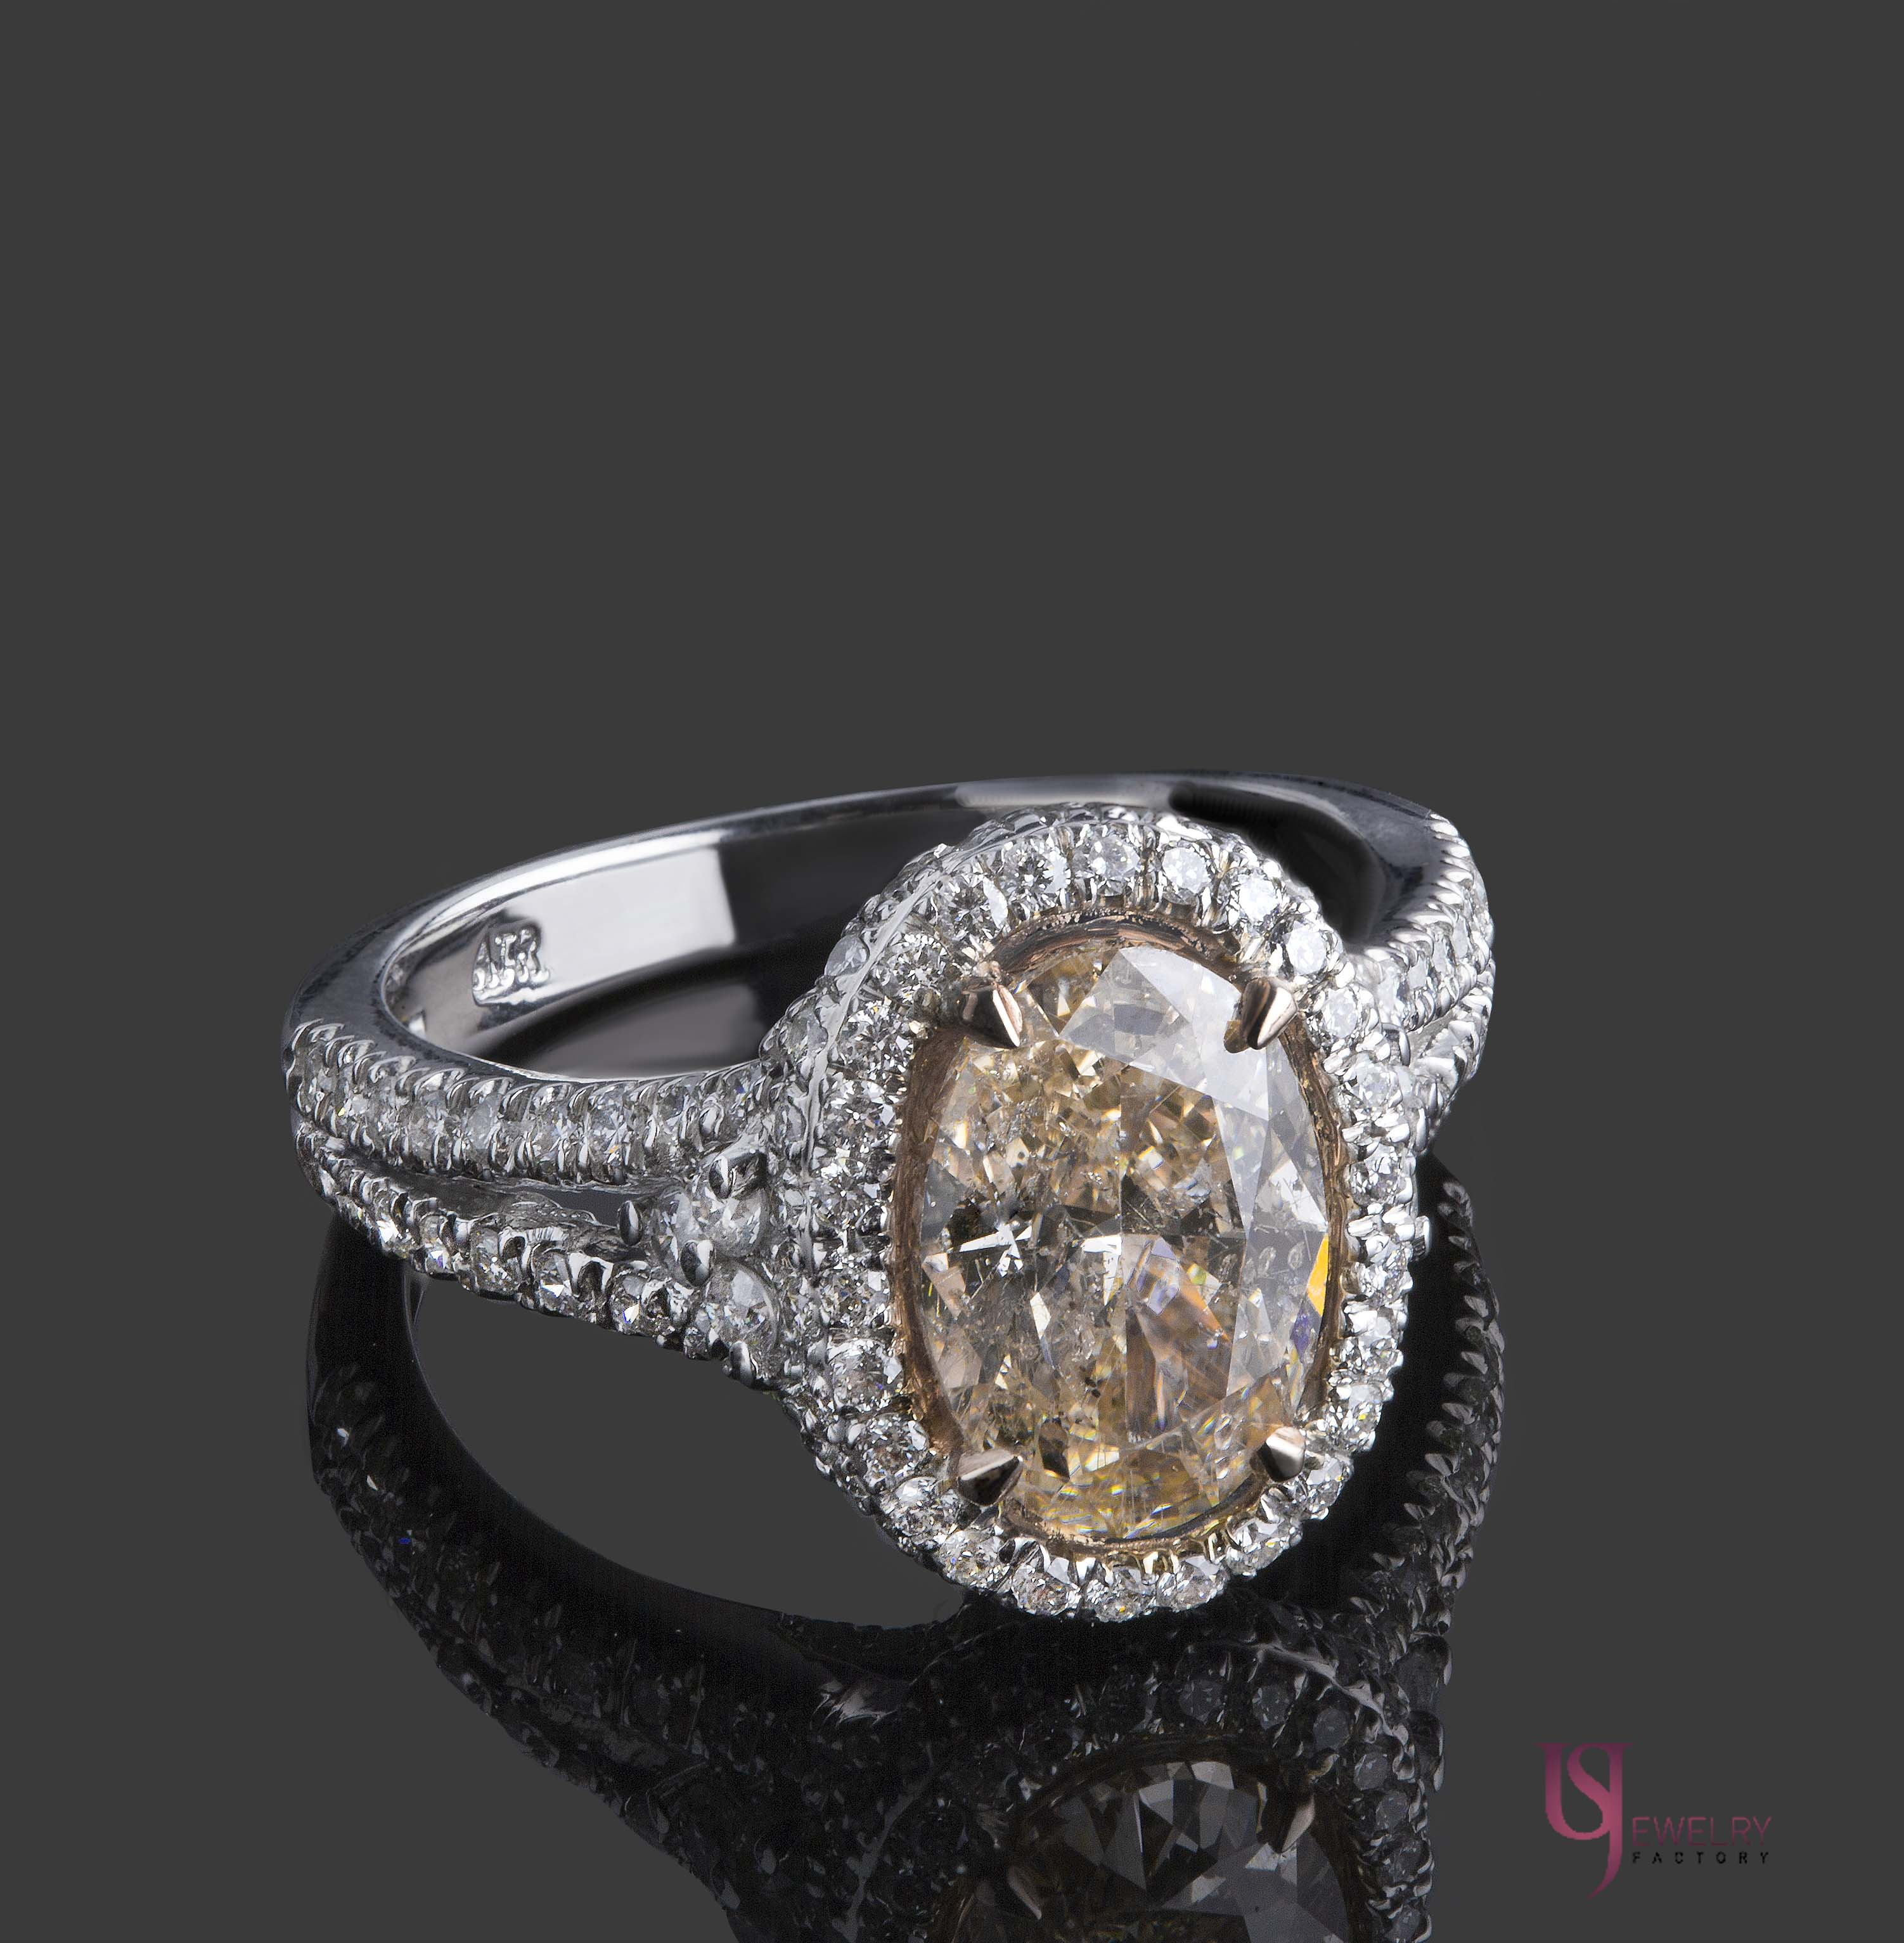 3 21 Carat Oval Fancy Light Brownish Pink Diamond Engagement Ring 18k White G